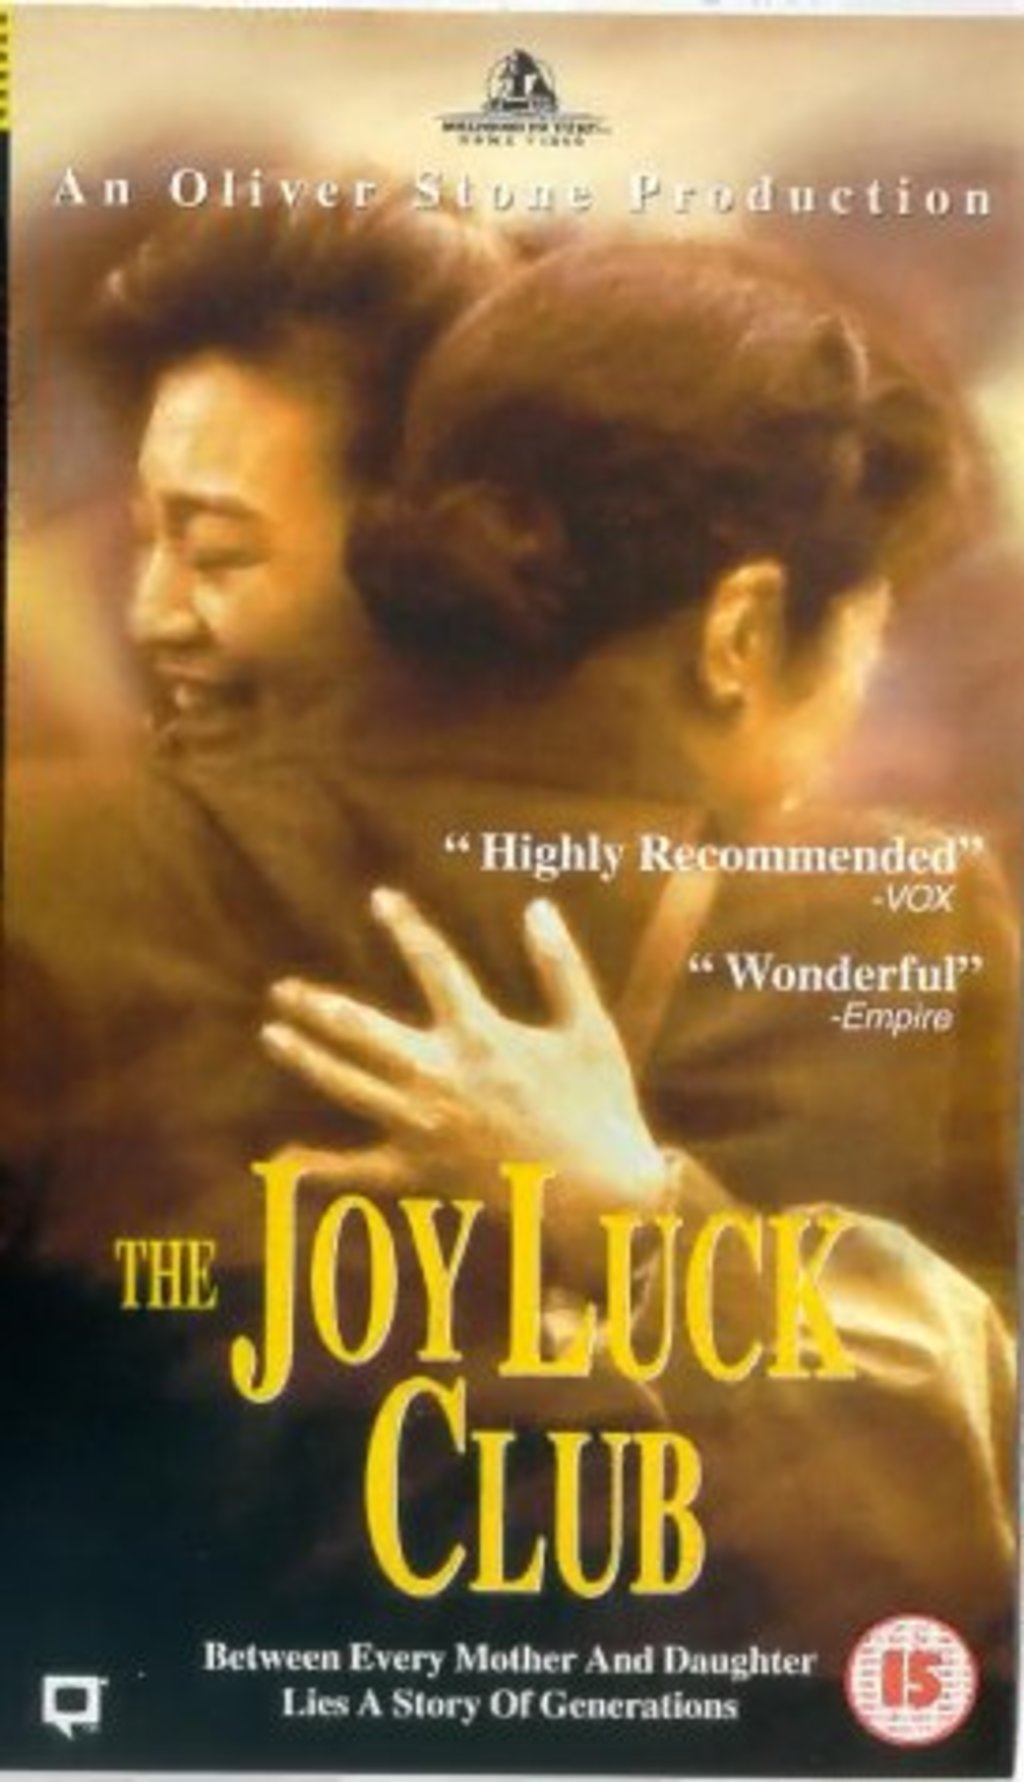 an analysis of chinese and american cultures in the joy luck club movie Joy luck club 3 the joy luck club movie reaction paper the joy luck club is a chinese or chinese-american chinese and american (or western) cultures were.